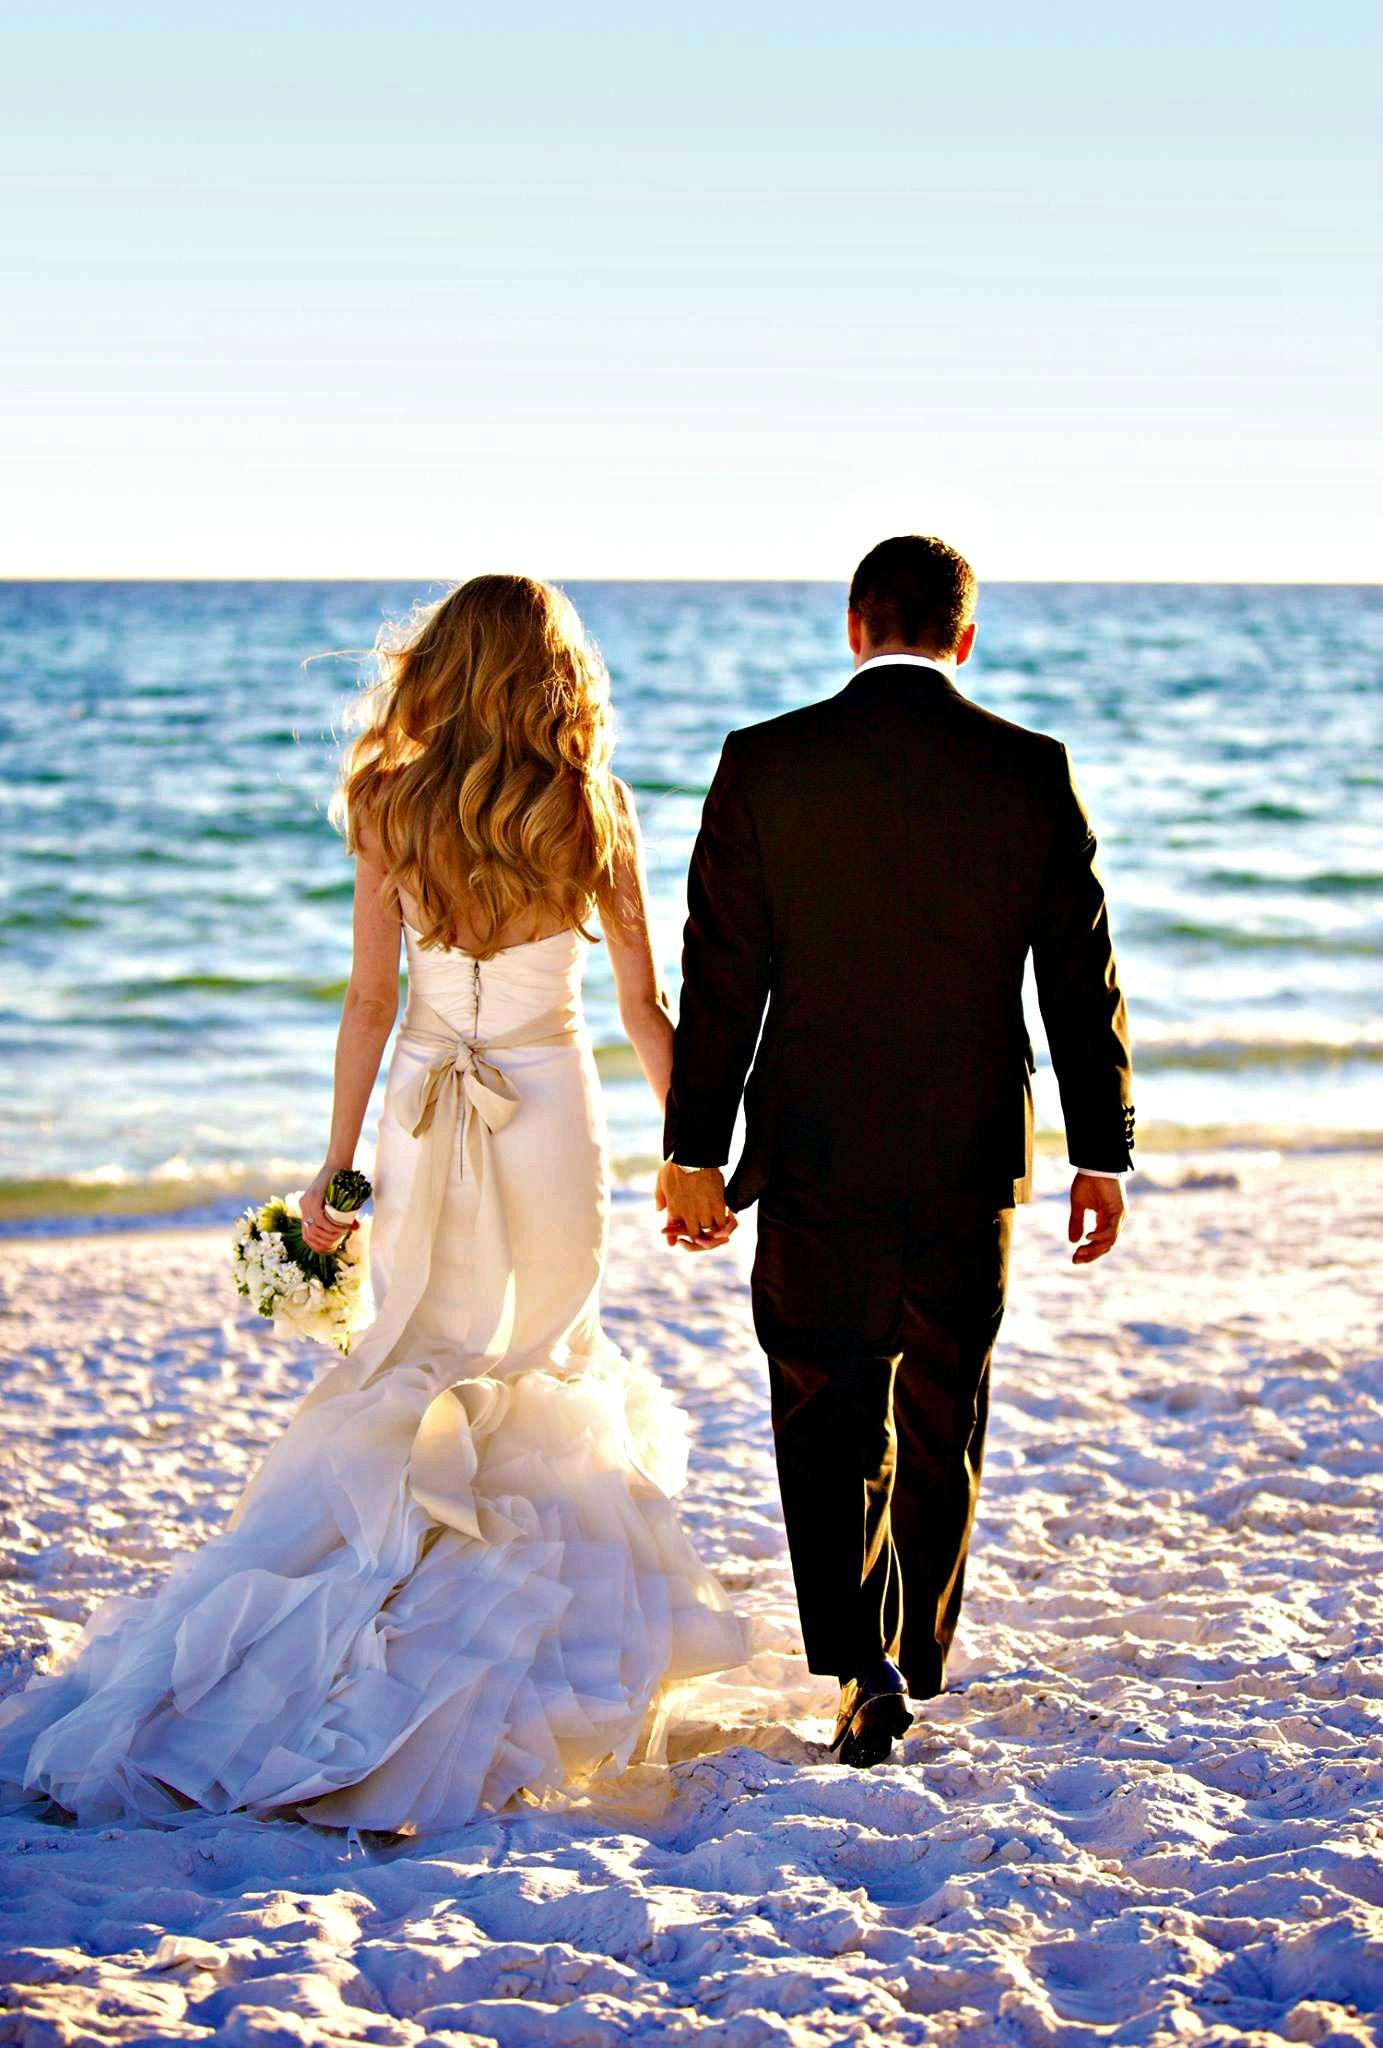 wedding photography ideas which truly are Great...